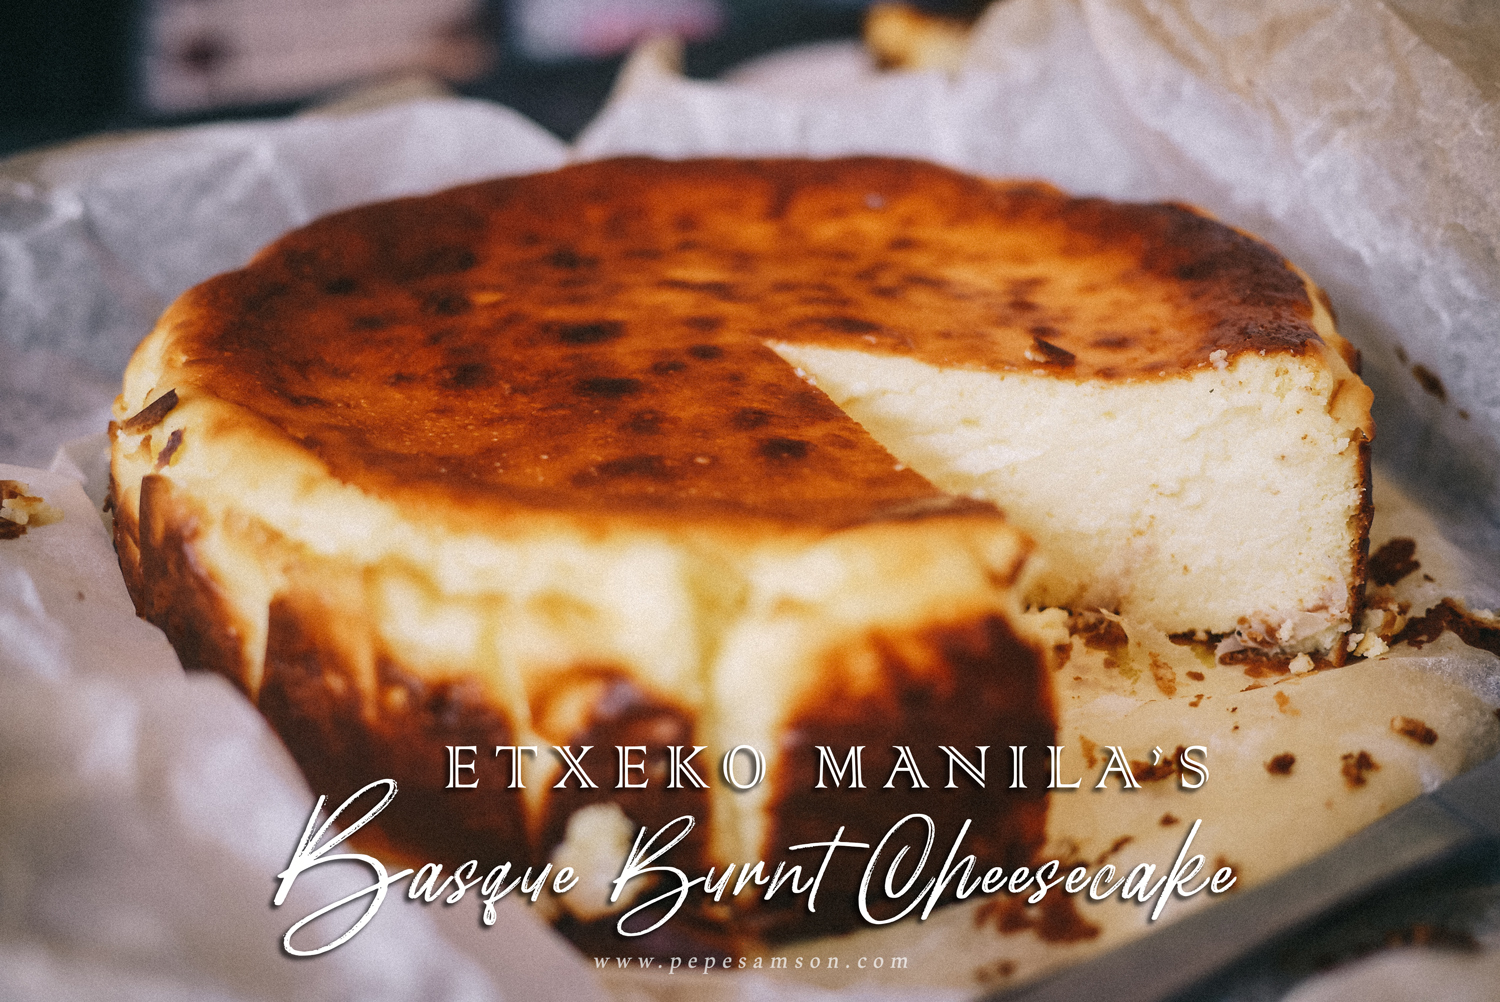 That Burnt Cheesecake All Over Instagram, and Where to Get It (Etxeko Manila)